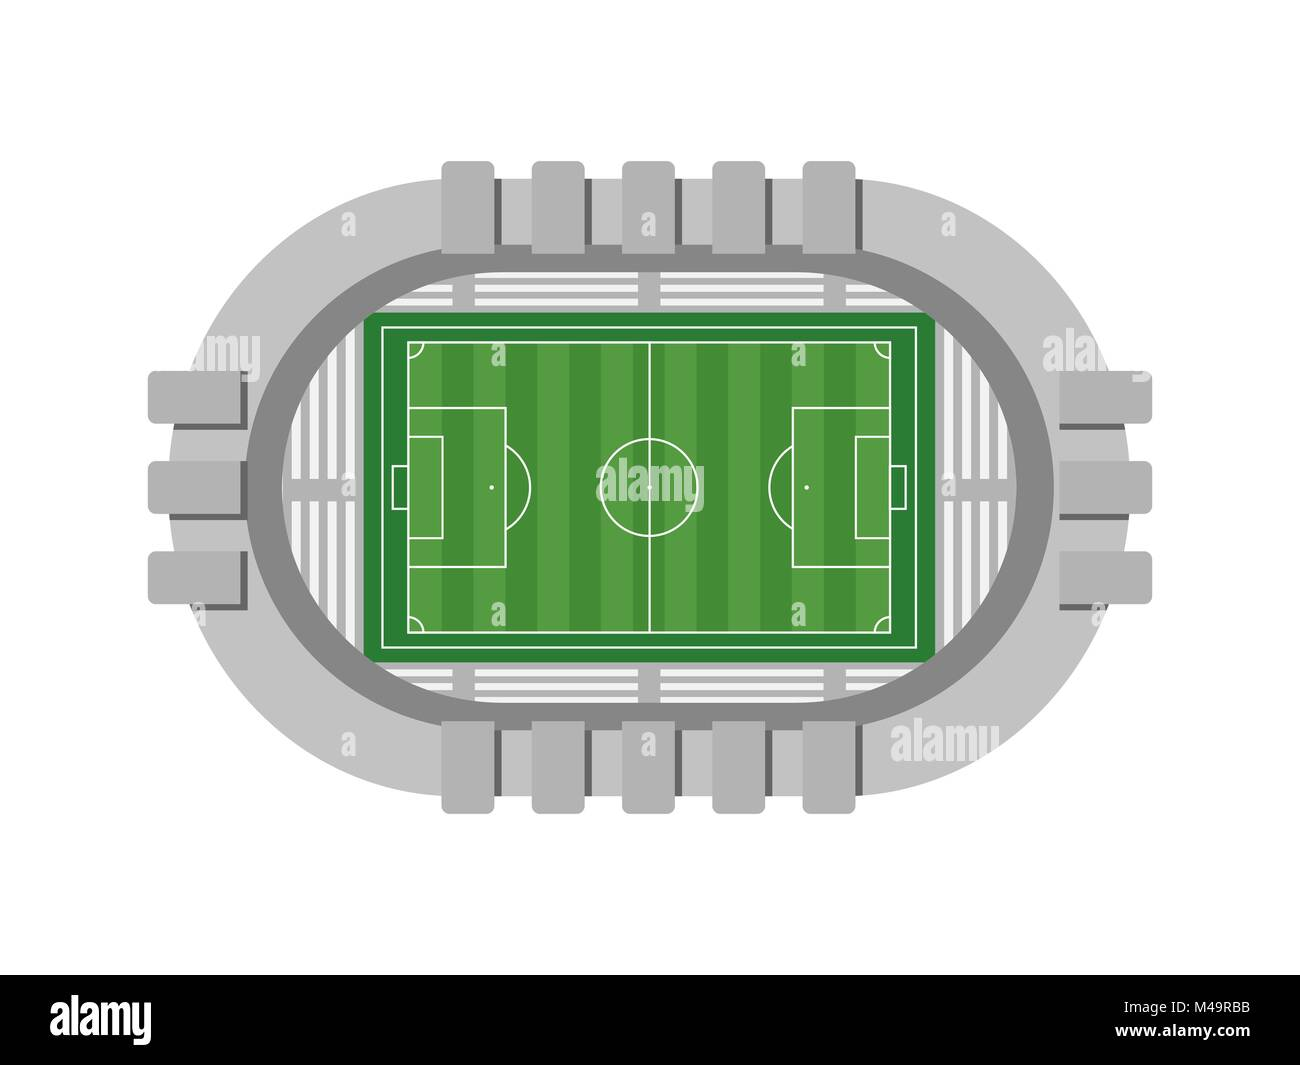 Football stadium aerial view on white background. Vector illustration - Stock Vector